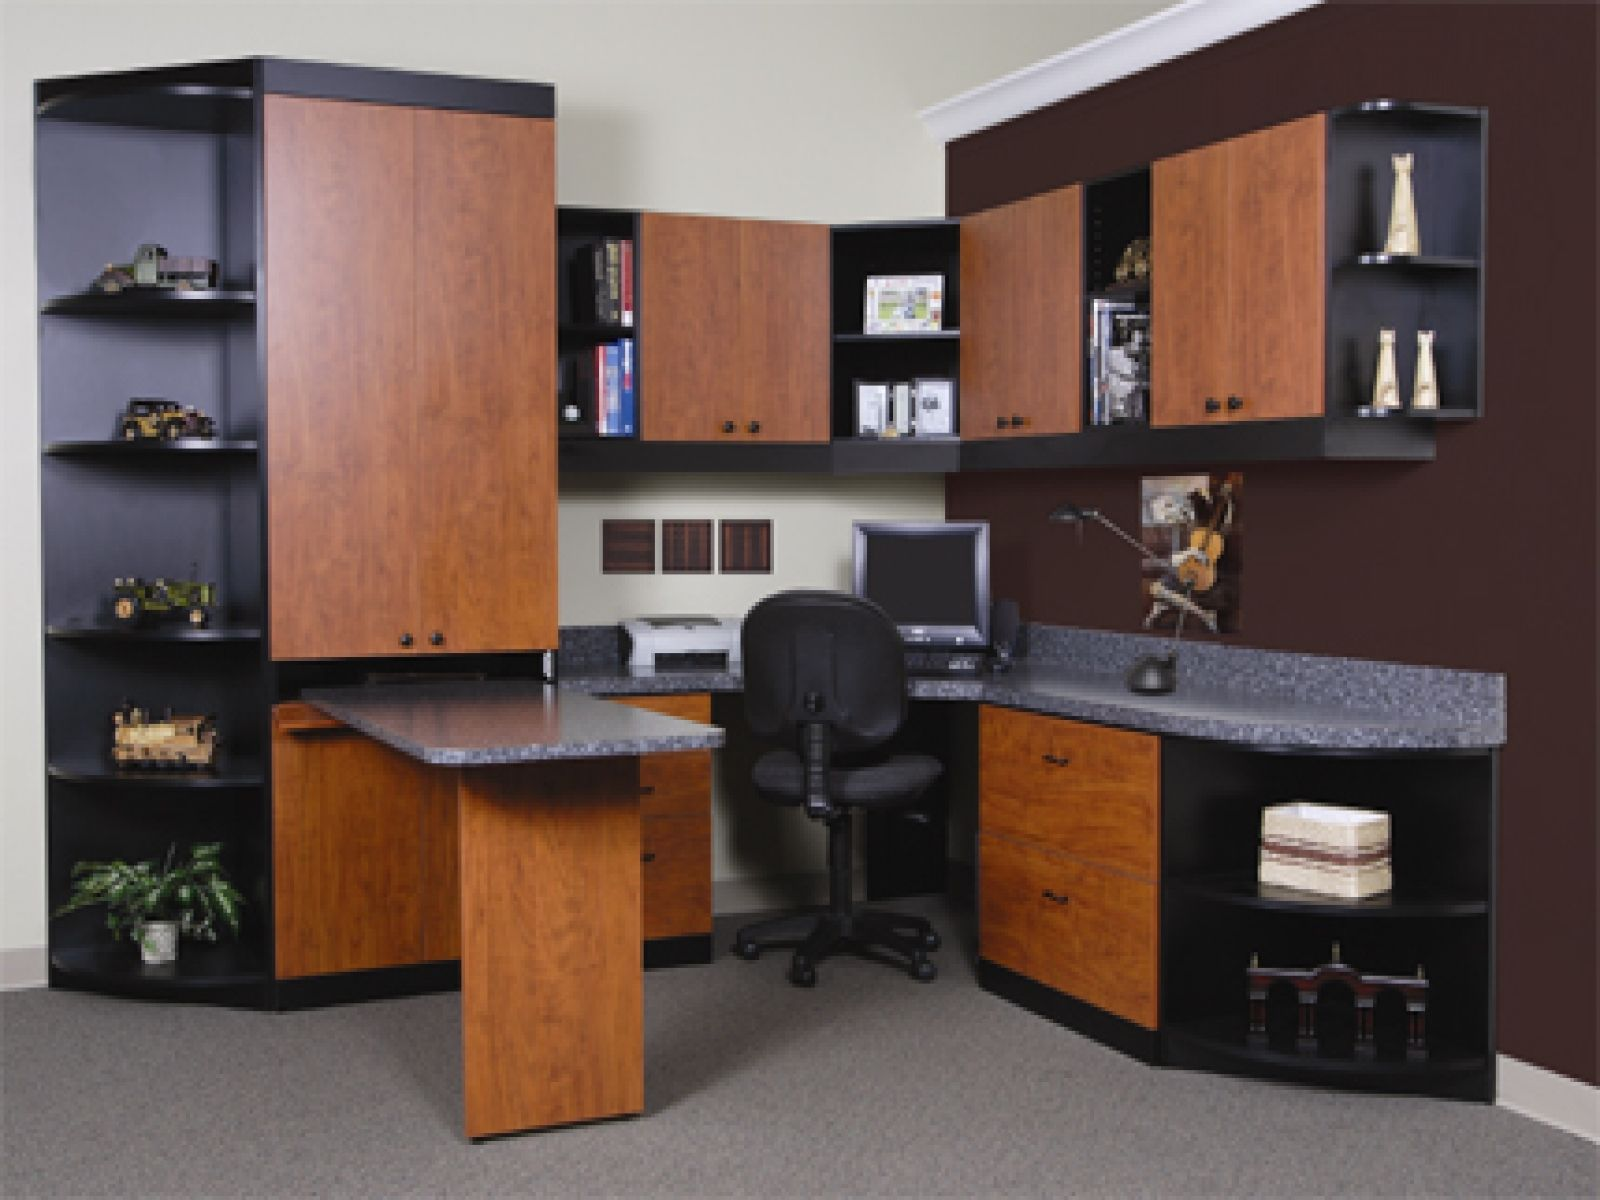 Office Wall Cabinets With Modern Small Display